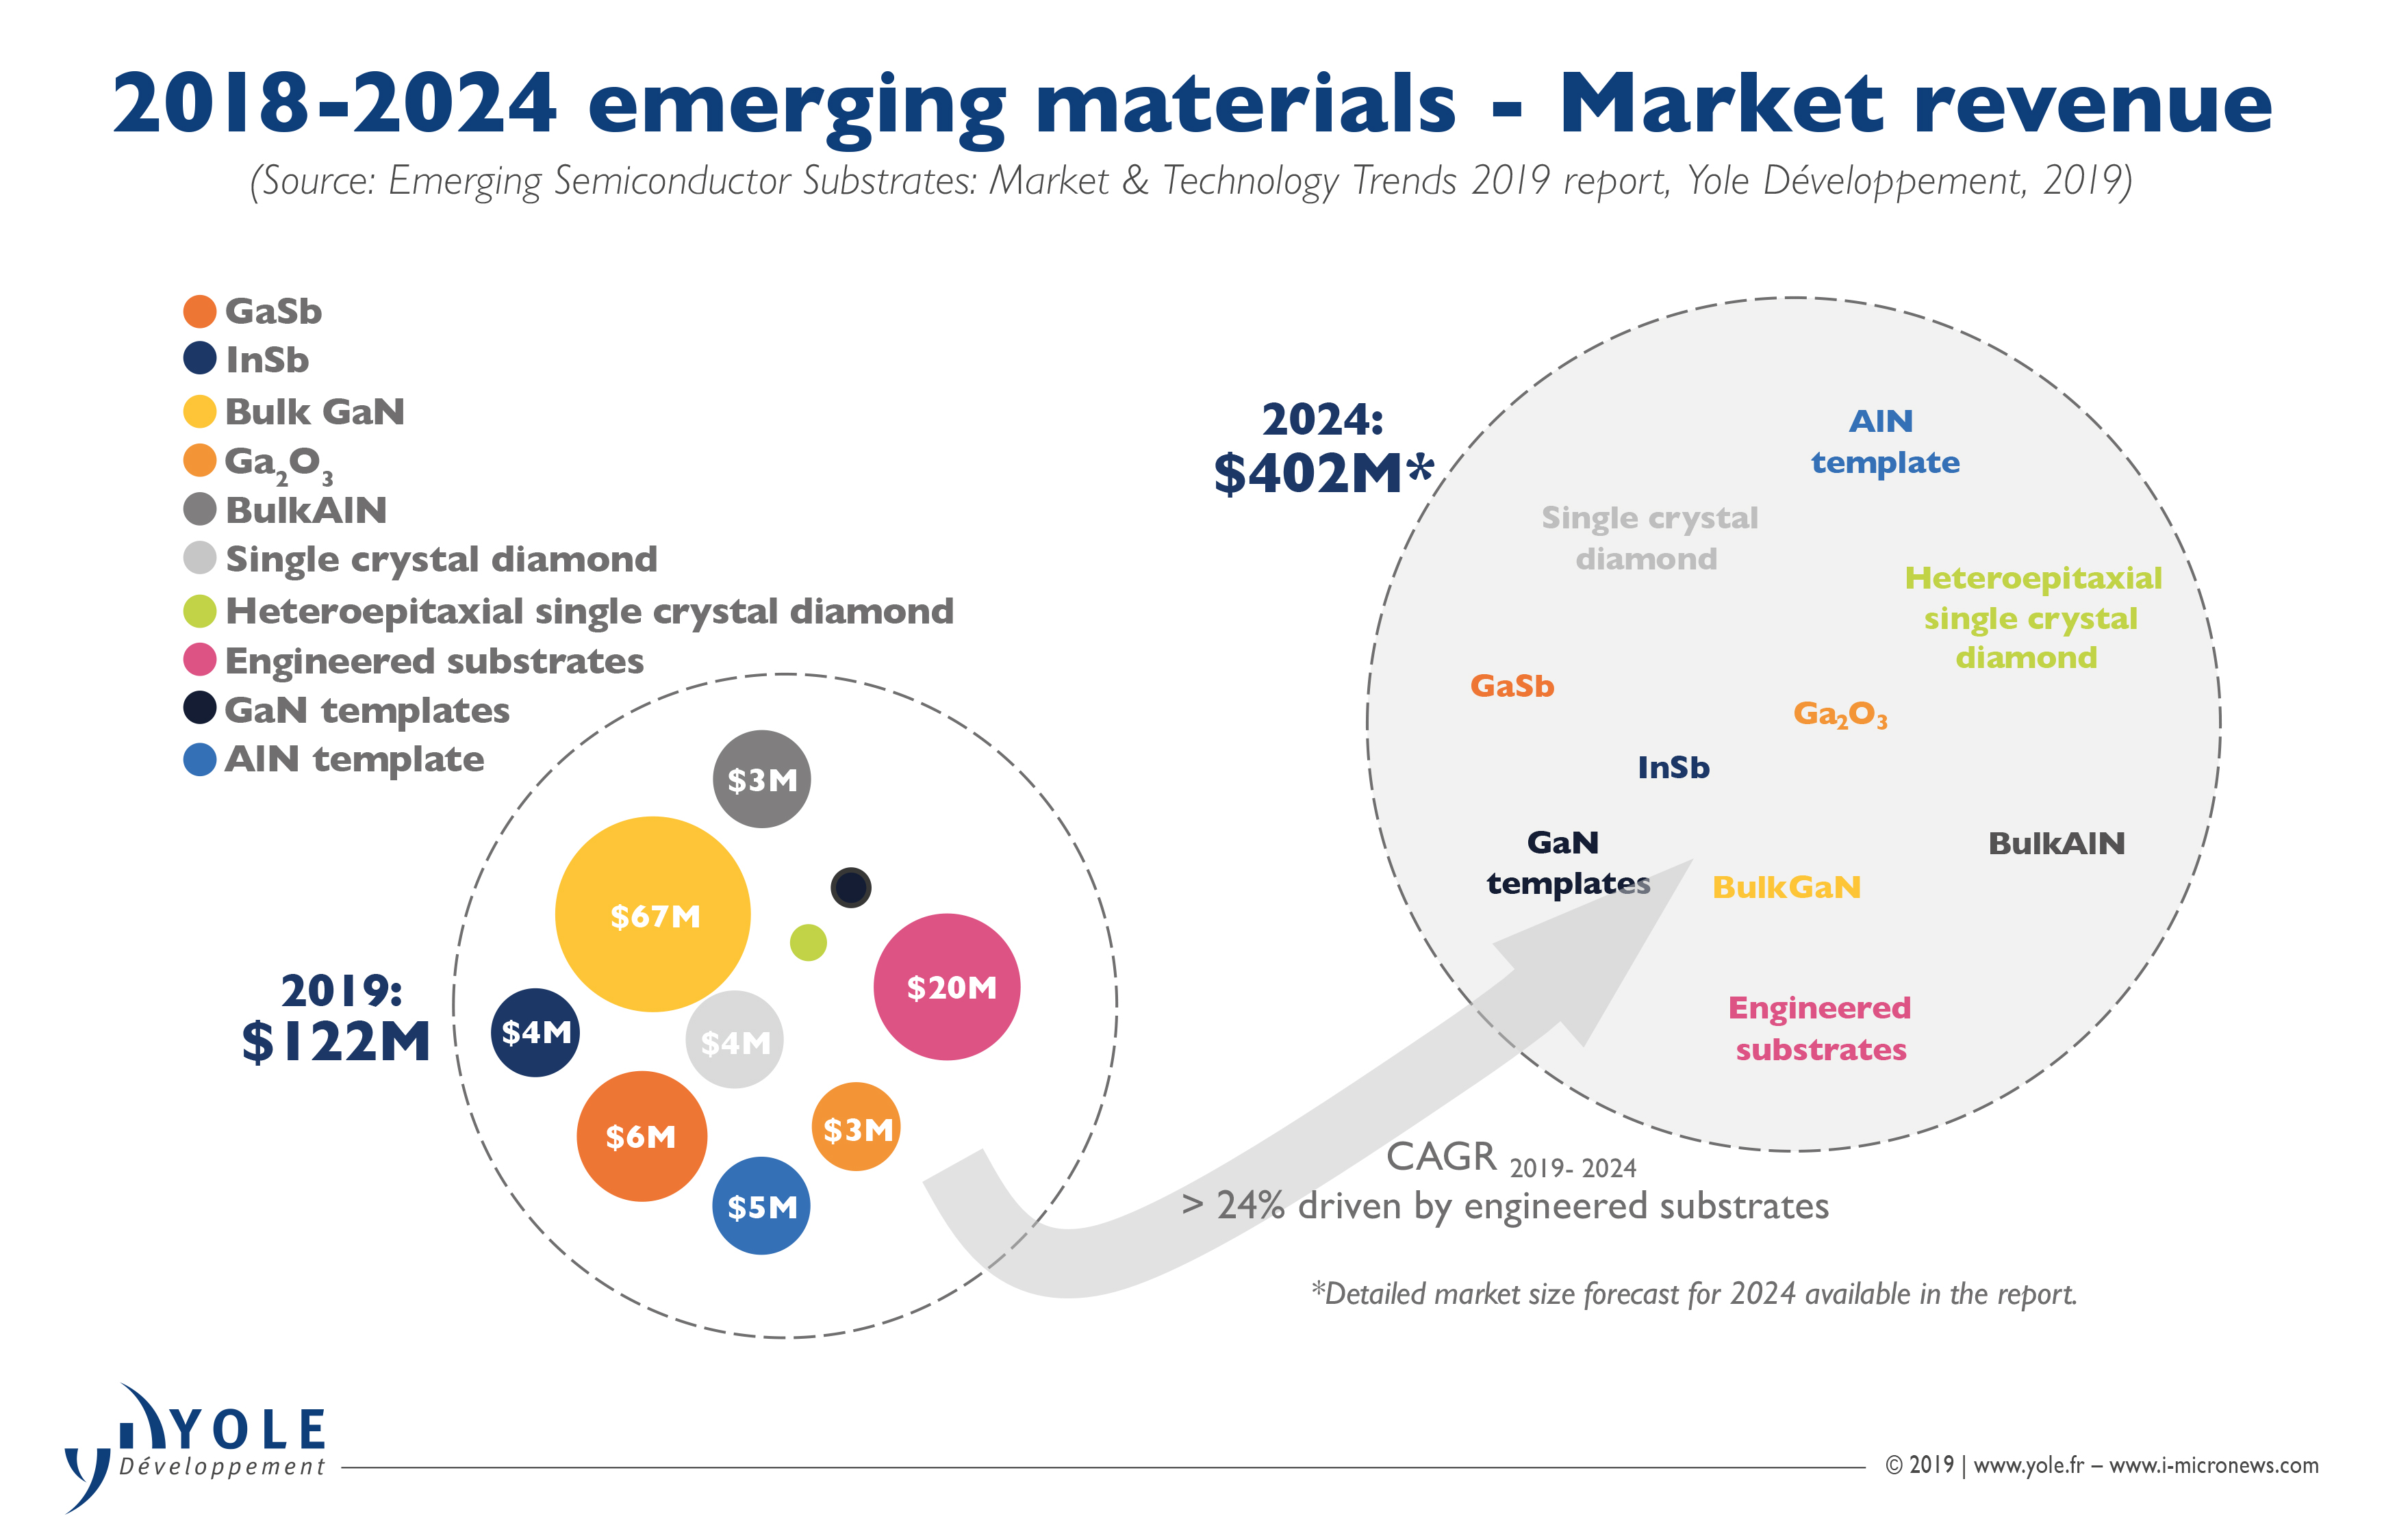 Emerging Semiconductor Substrates: What Will Be The Next